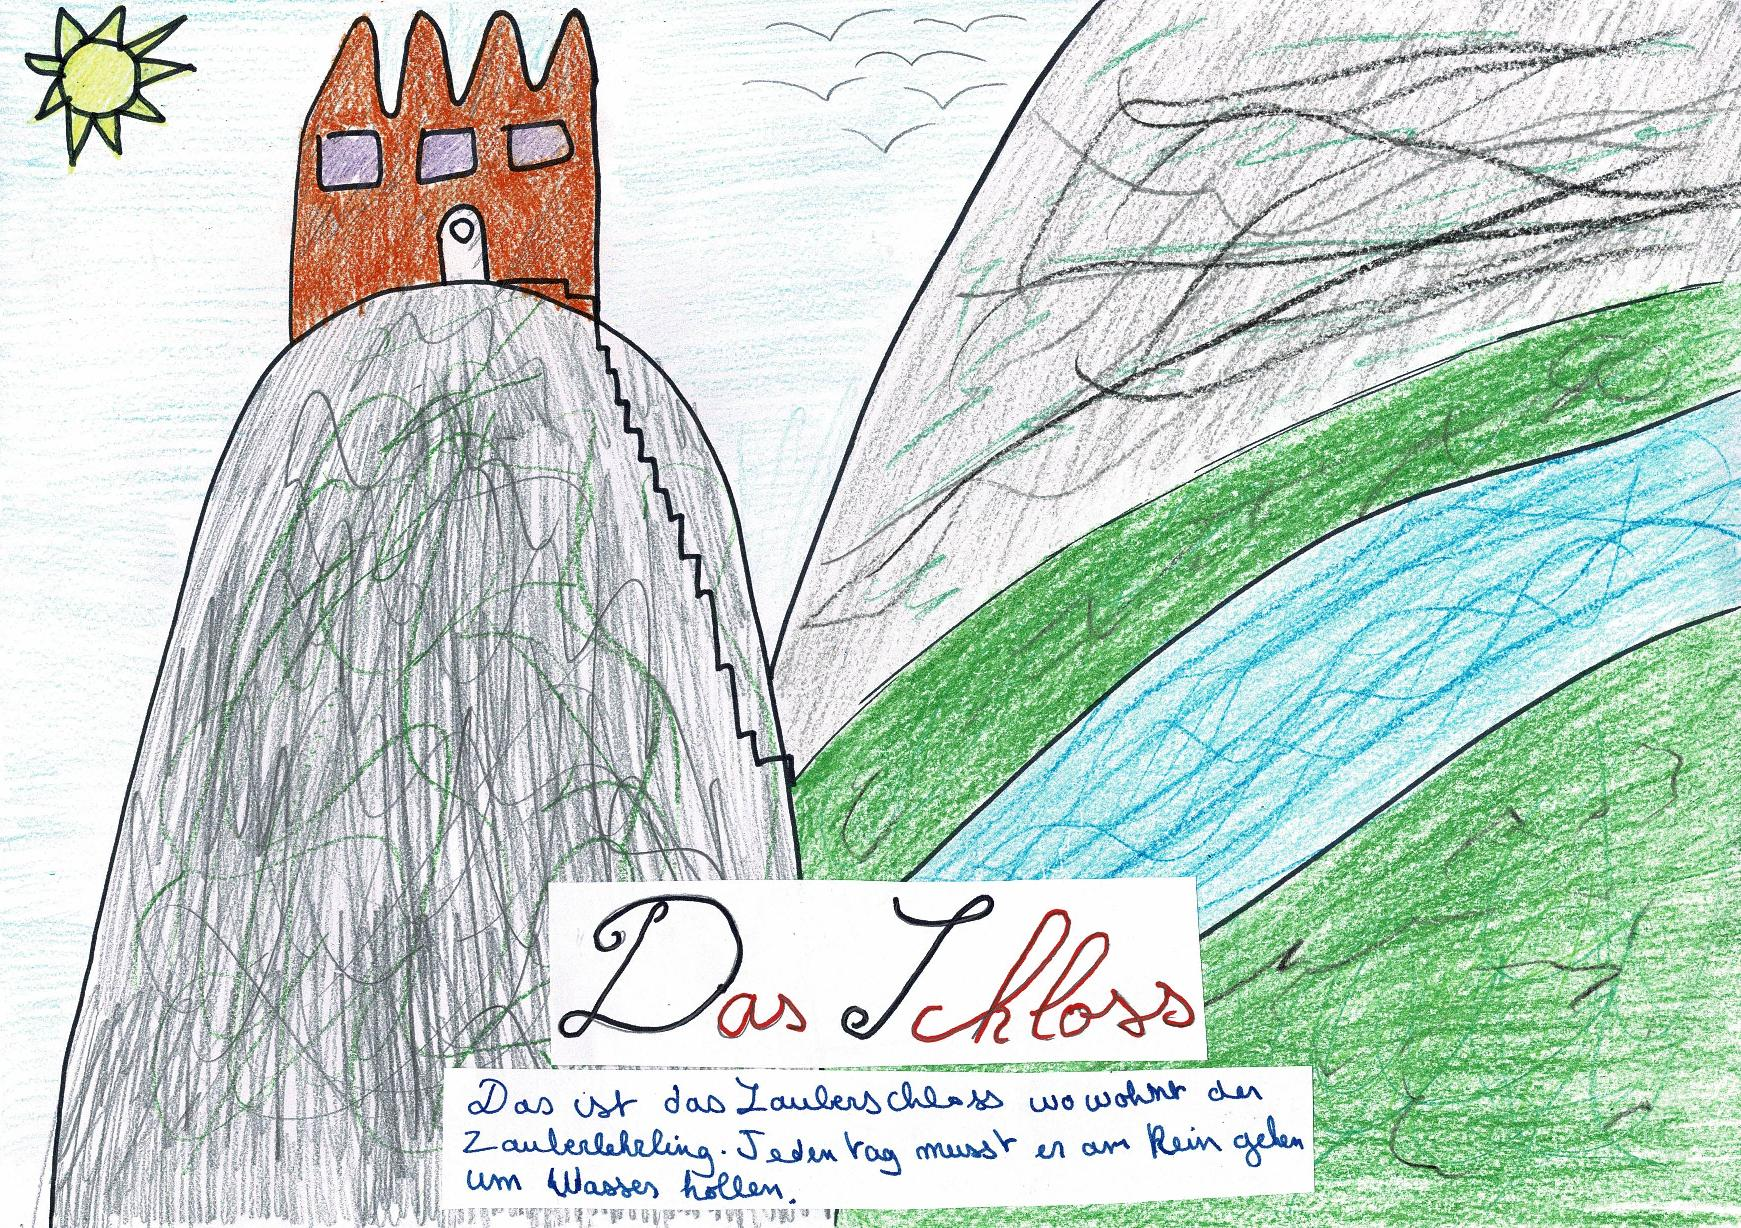 S-SCHLOSS-page-002